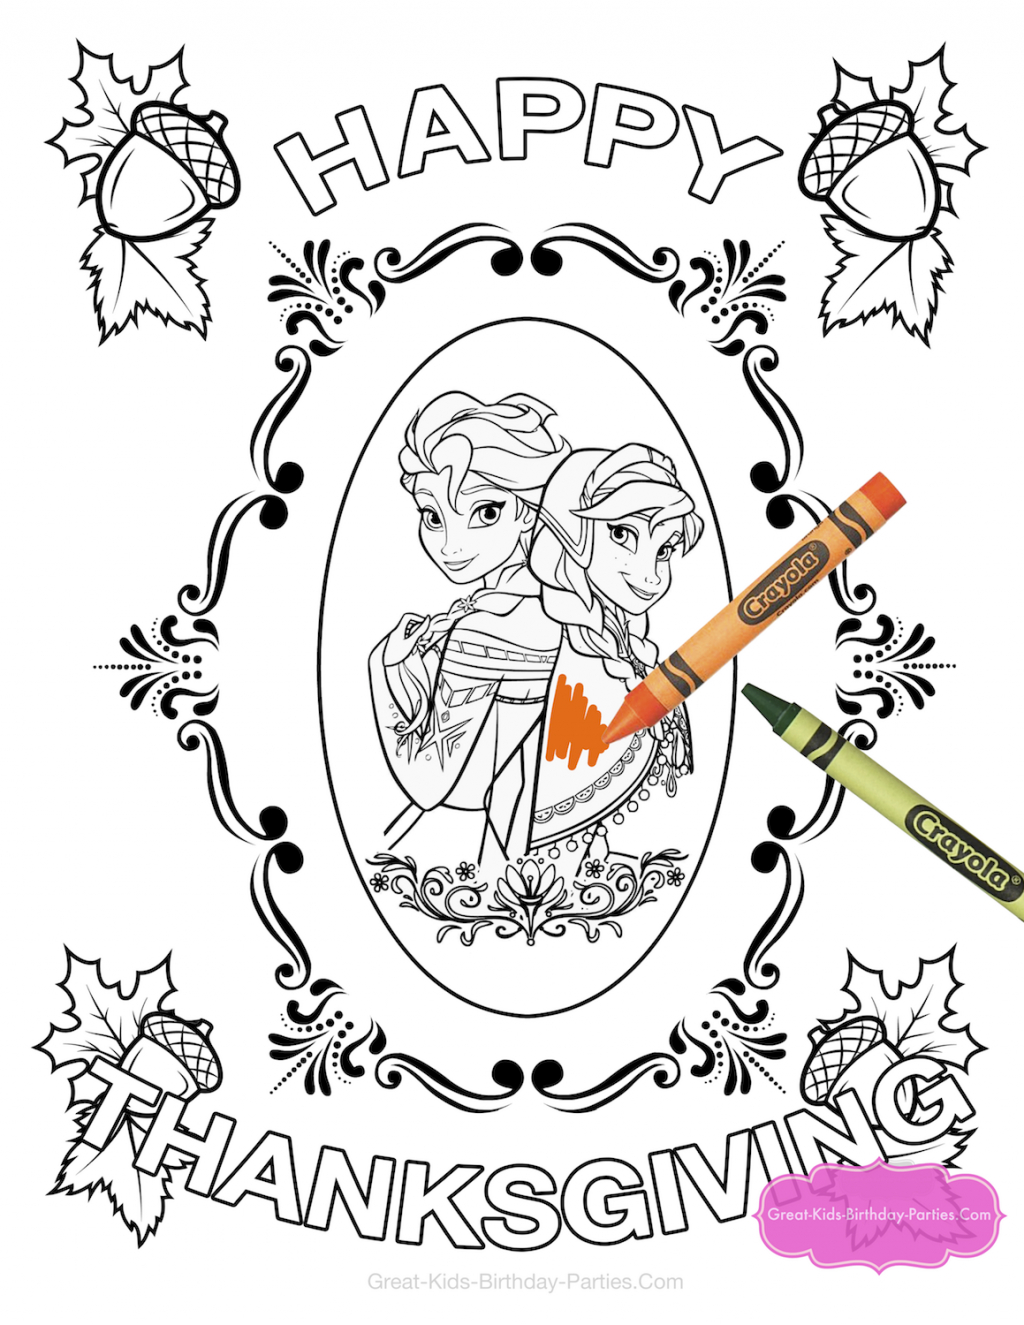 Thanksgiving Coloring Pages For Boys Coloring Page Hello Kitty Thanksgiving Coloring Pages At